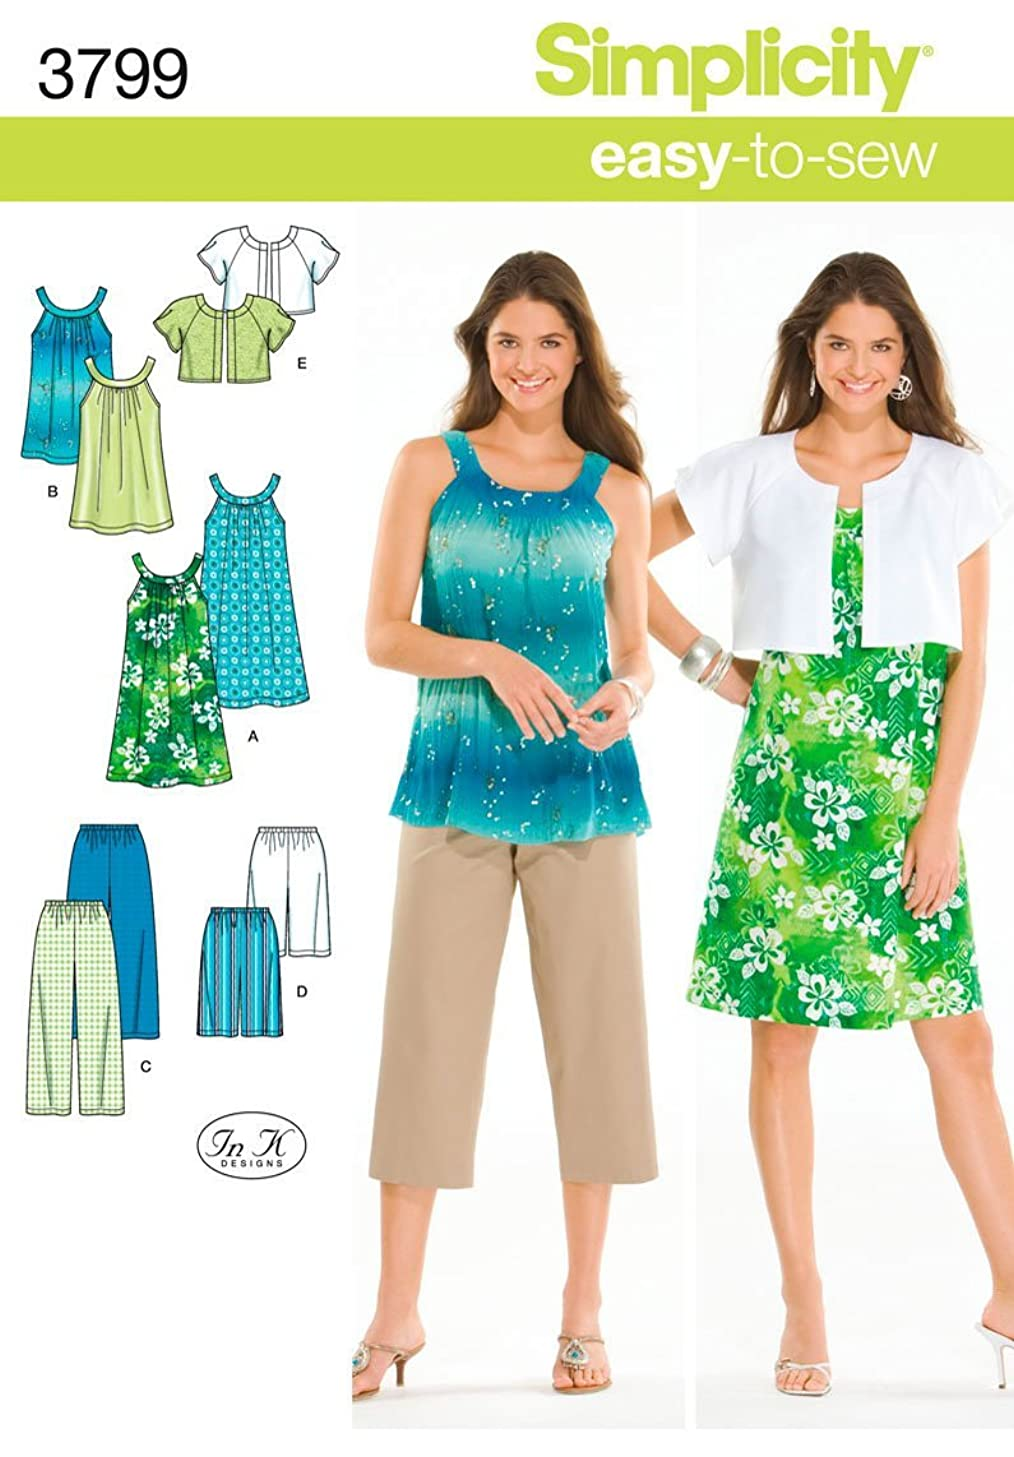 Simplicity Easy To Sew Women's Dress, Tunic, Cropped Pants, City Shorts, and Jacket Sewing Patterns, Sizes XXS-M